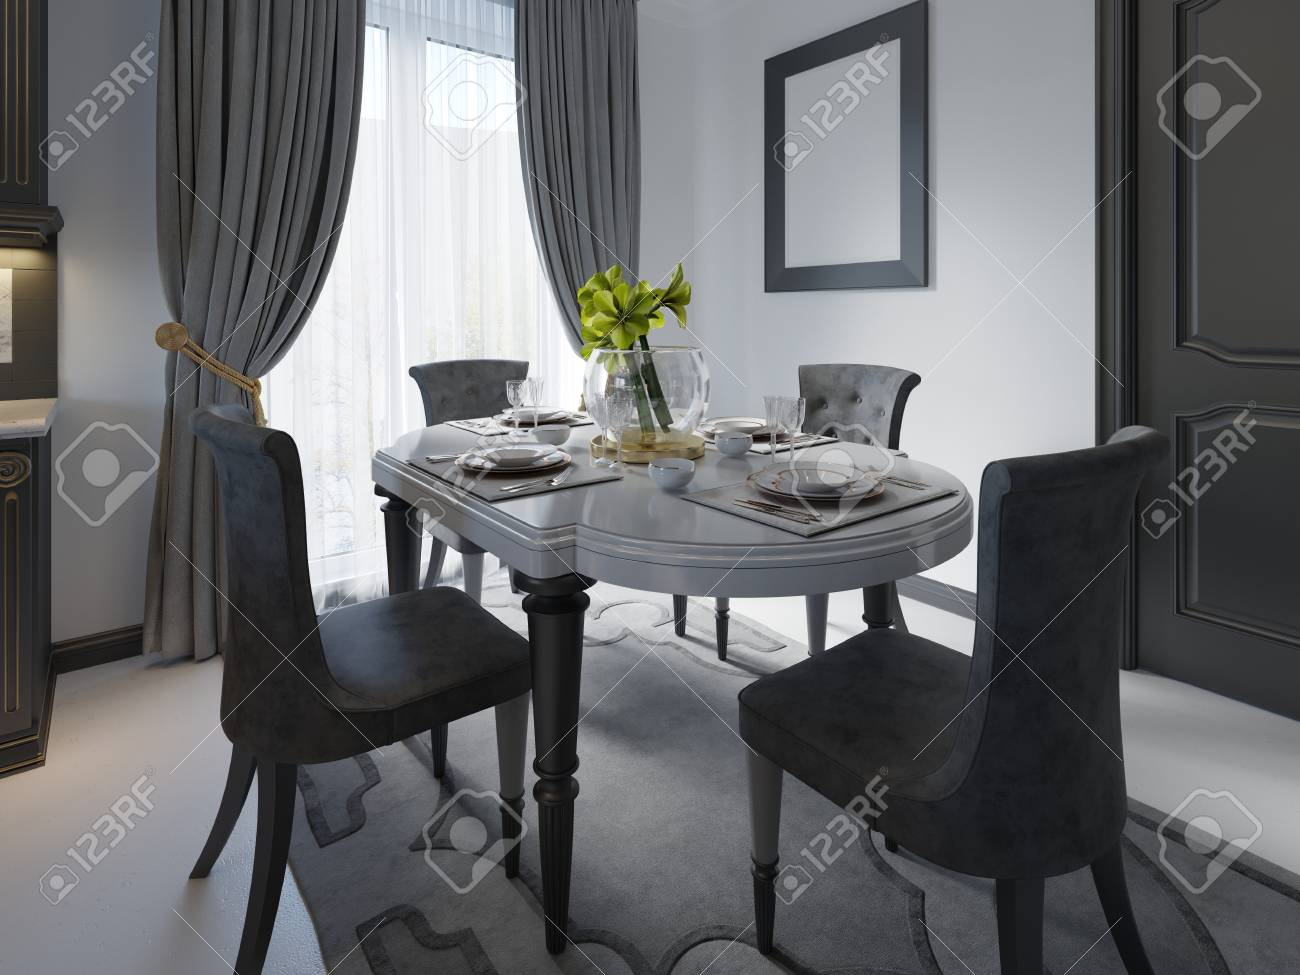 Luxury Black Dining Room With Dark Furniture White Marble Floor Stock Photo Picture And Royalty Free Image Image 113850209